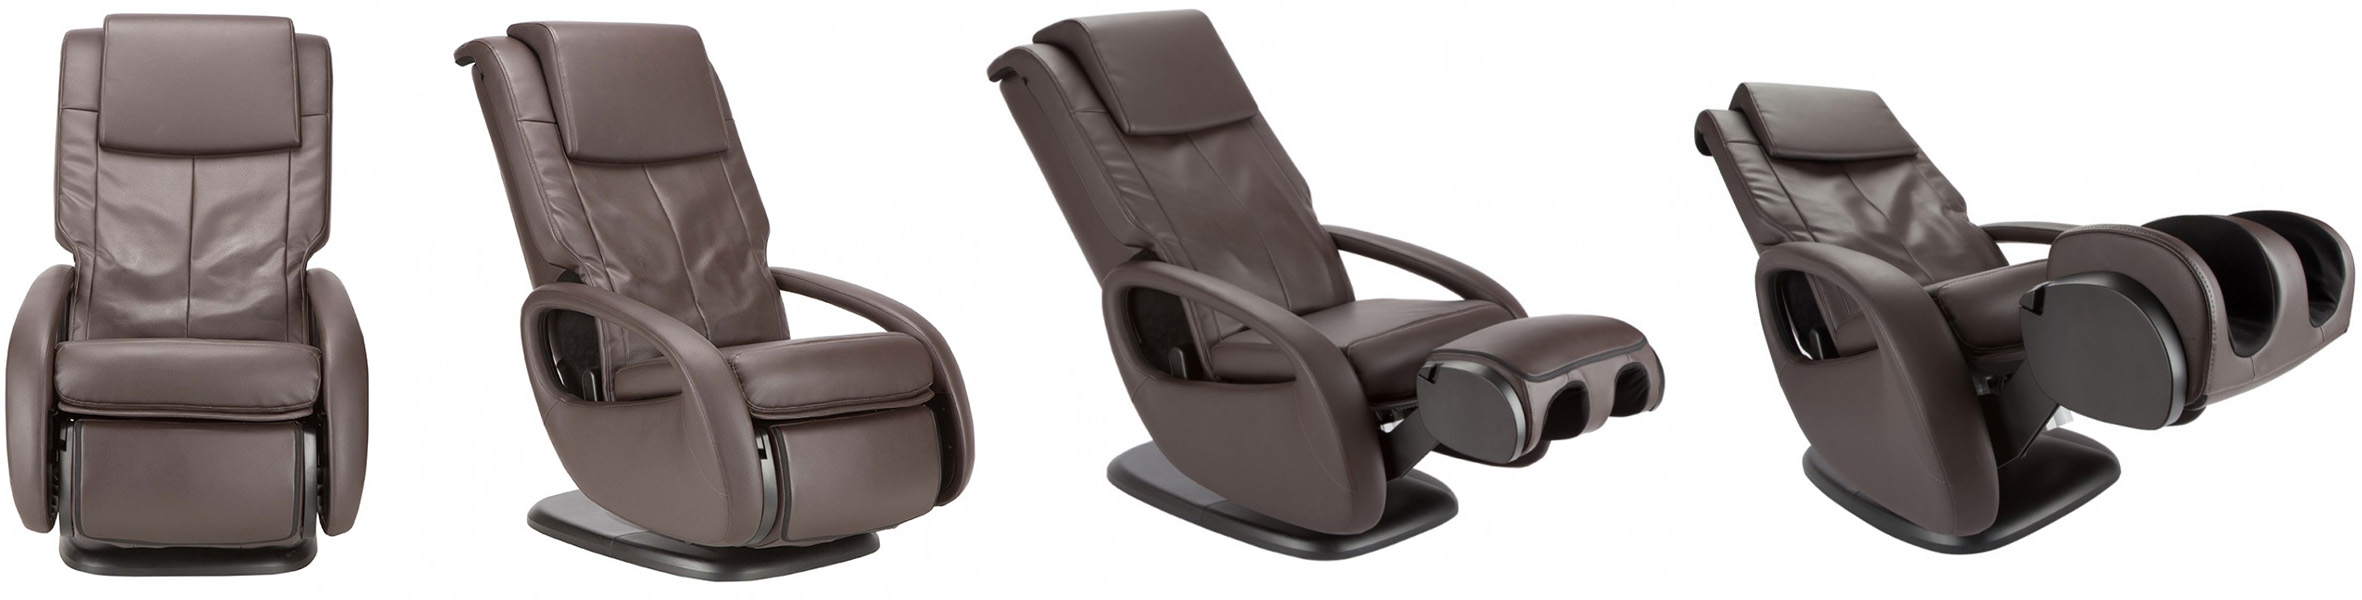 Human Touch Wholebody 7 1 Massage Chair Recliner